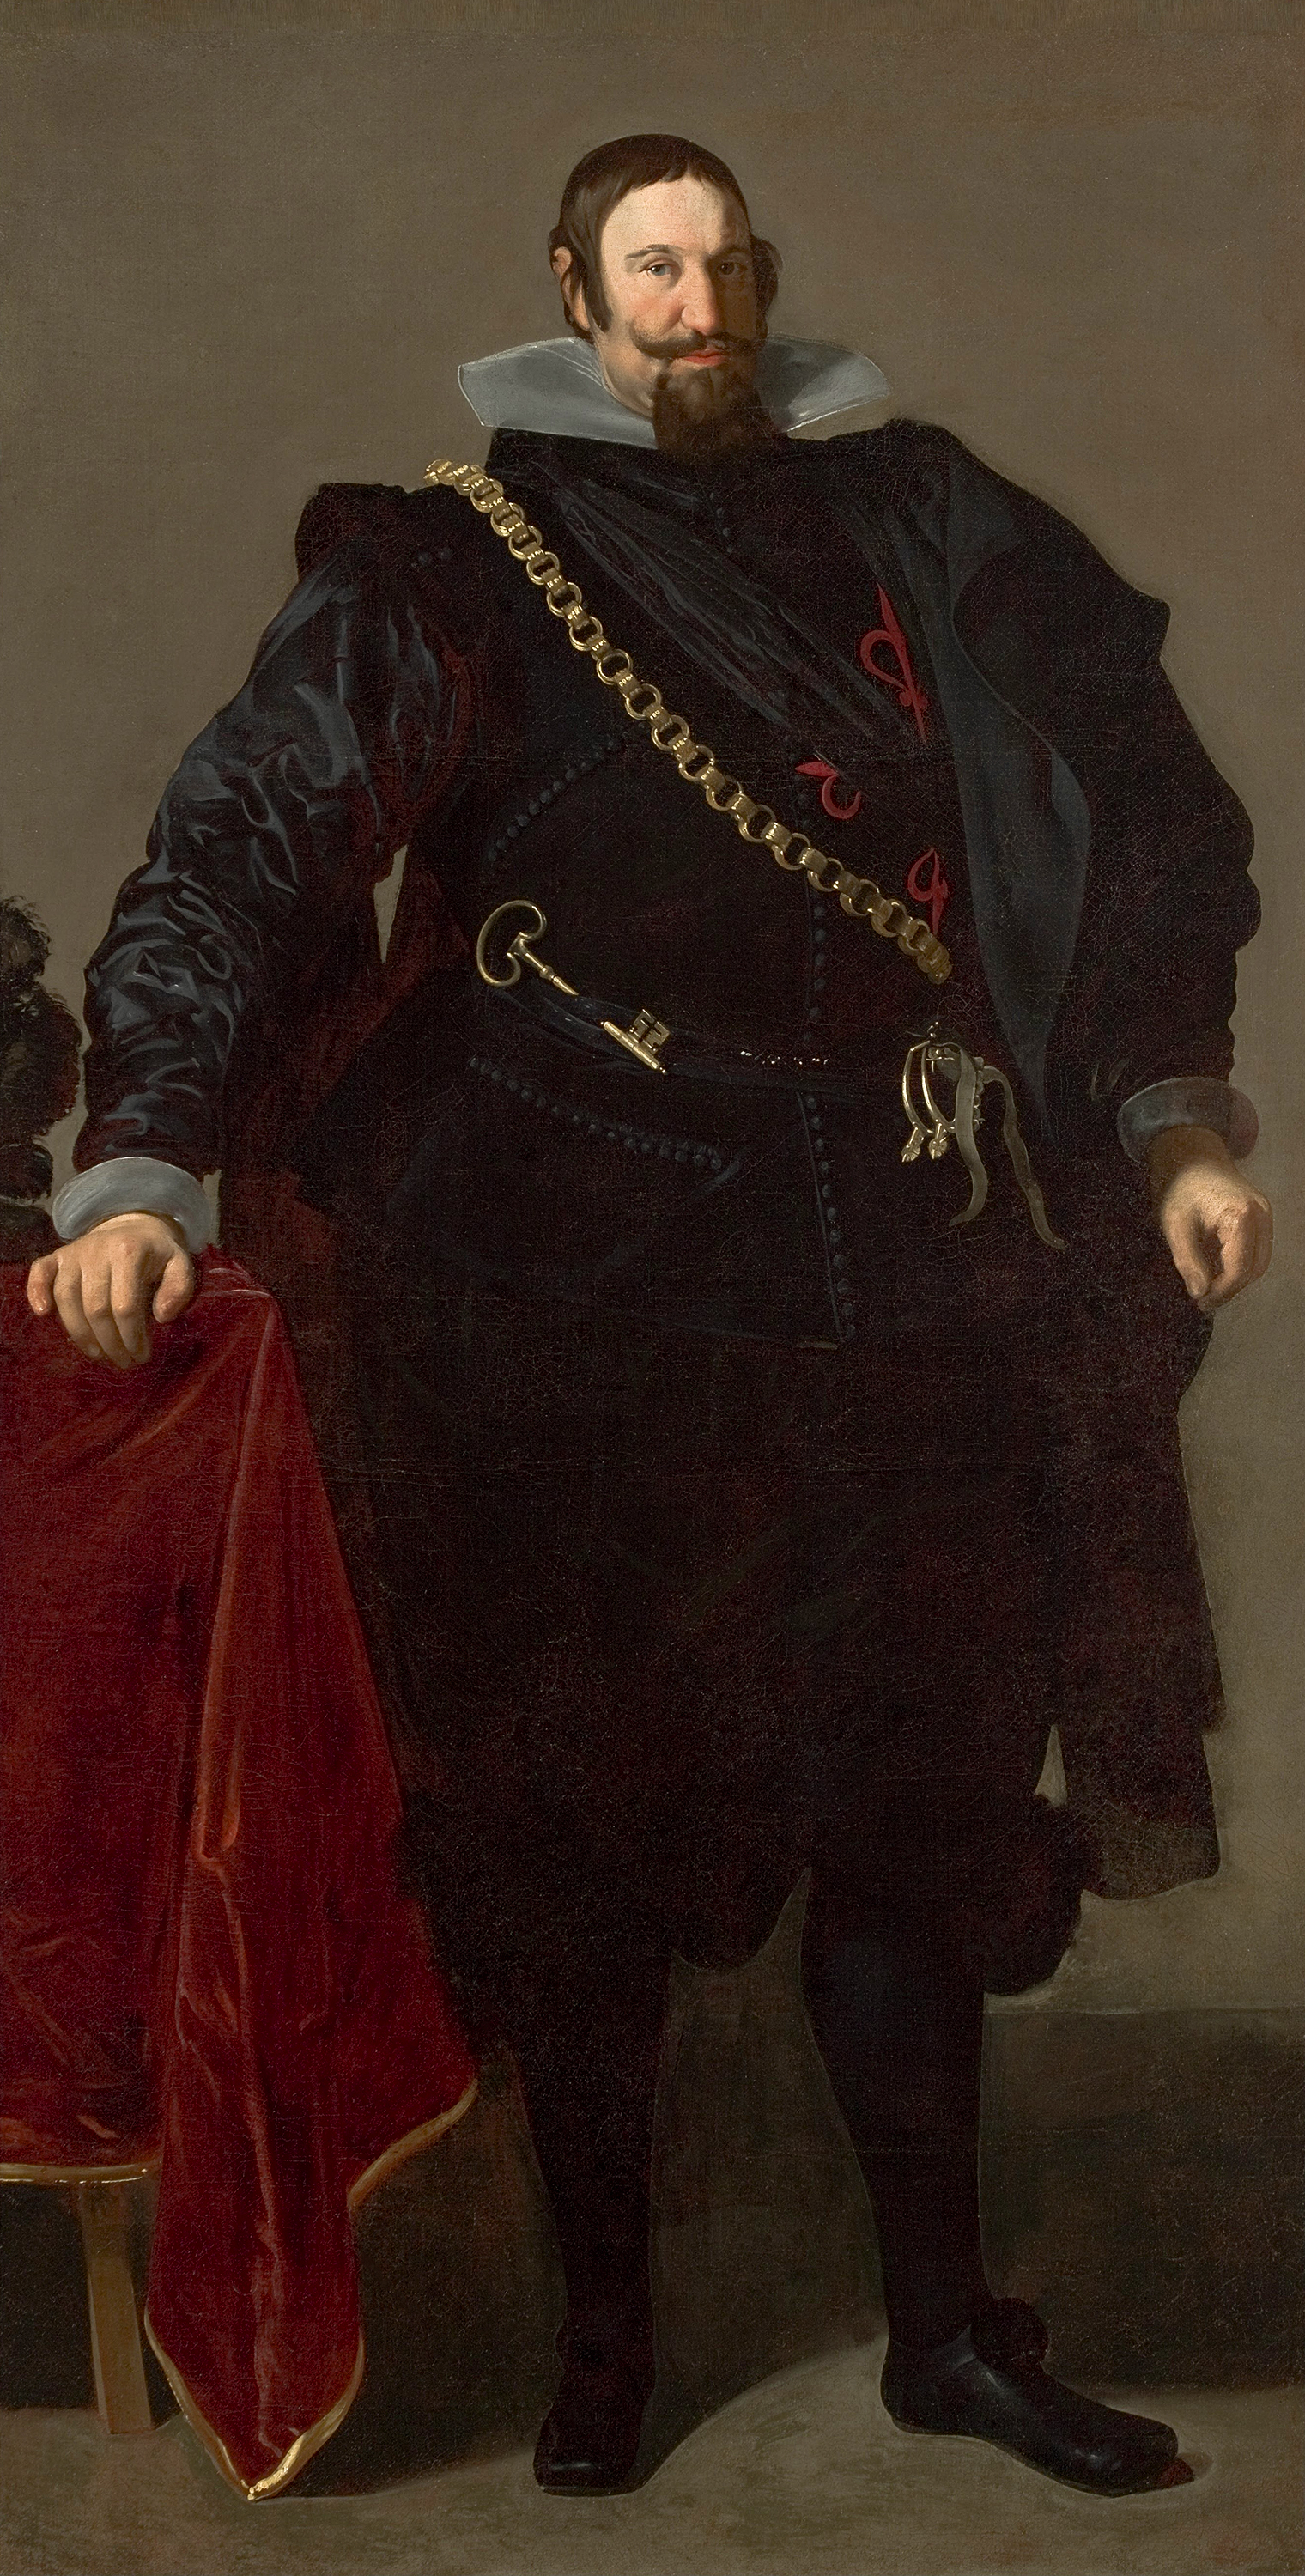 Portrait of Gaspar de Guzmán (1587-1645), Count of Olivares, Duke of Sanlúcar (1625); Great Equerry (Caballerizo major) from 1624 to 1643; de facto Prime Minister of Spain (valido del rey Felipe IV) from 1622 to 1643, 1624 | Portraits of Kings